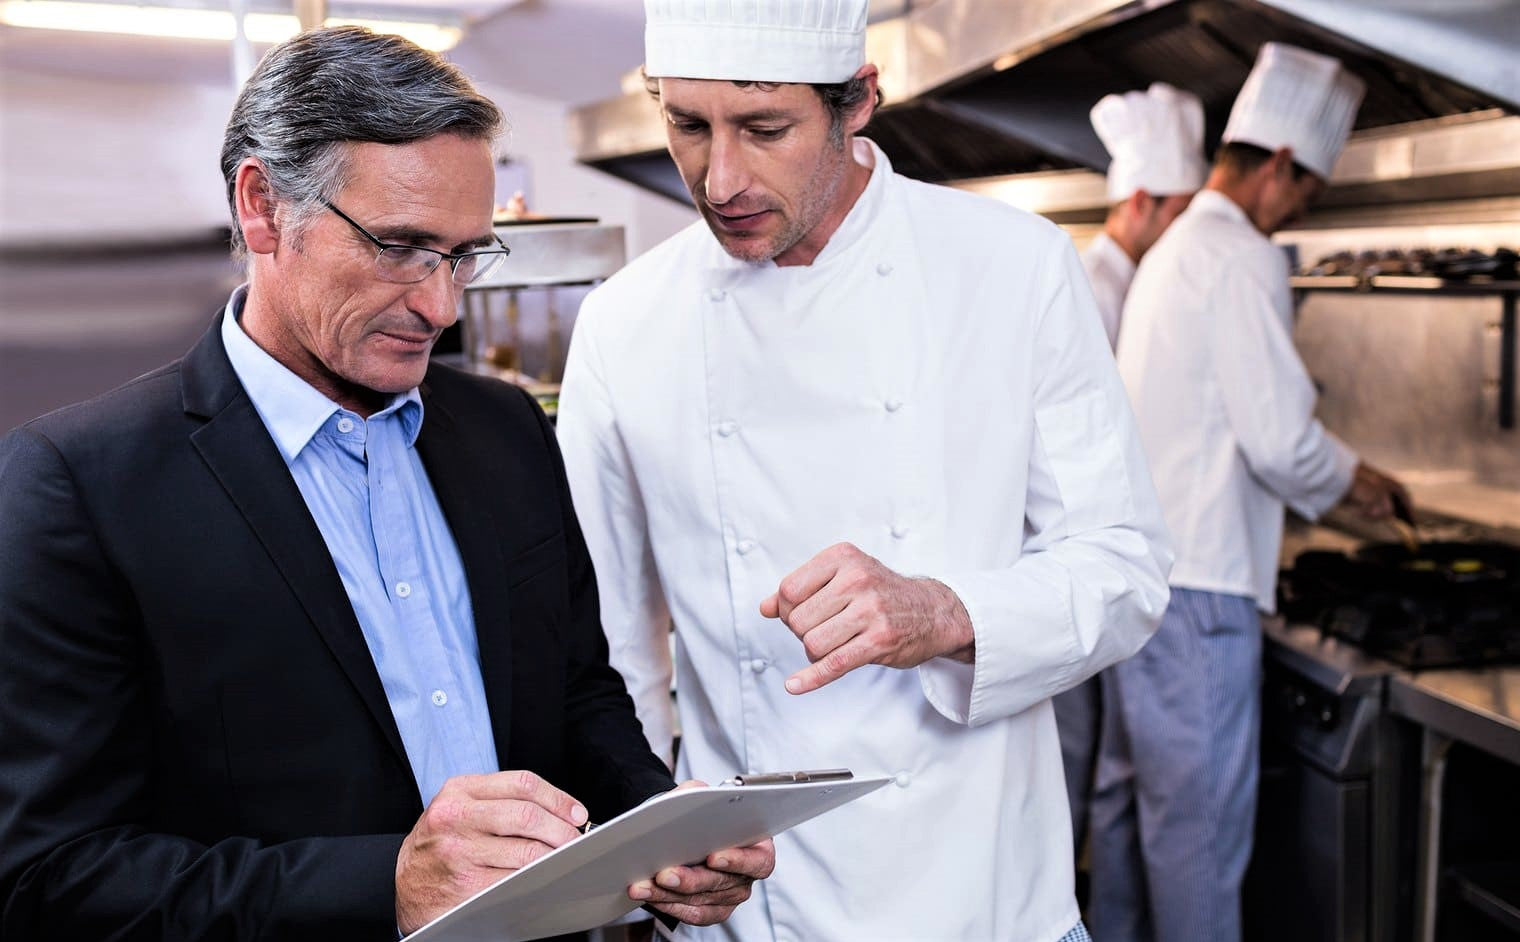 well-dressed manager in suit speaks to chef in white hat of successful restaurant